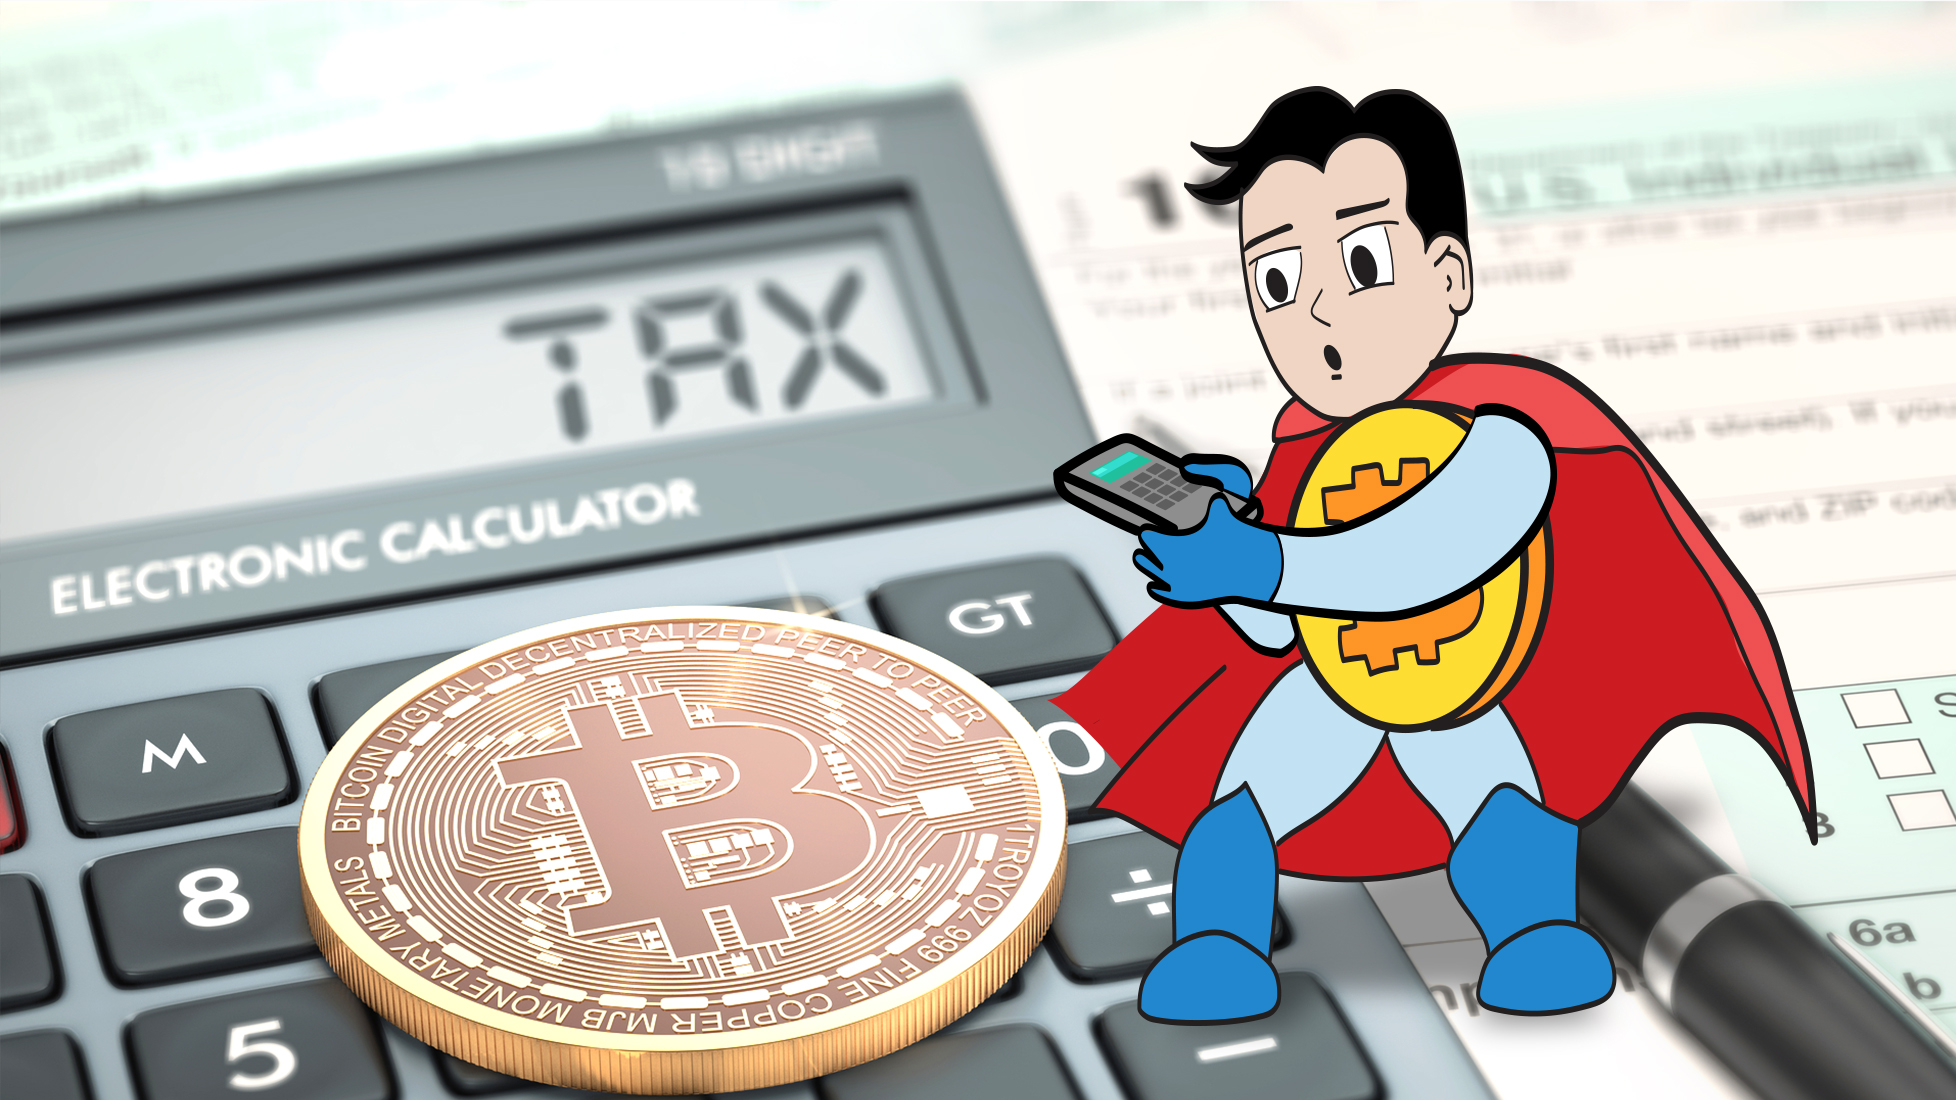 superman bitcoin calculator tax guide xchange.bg